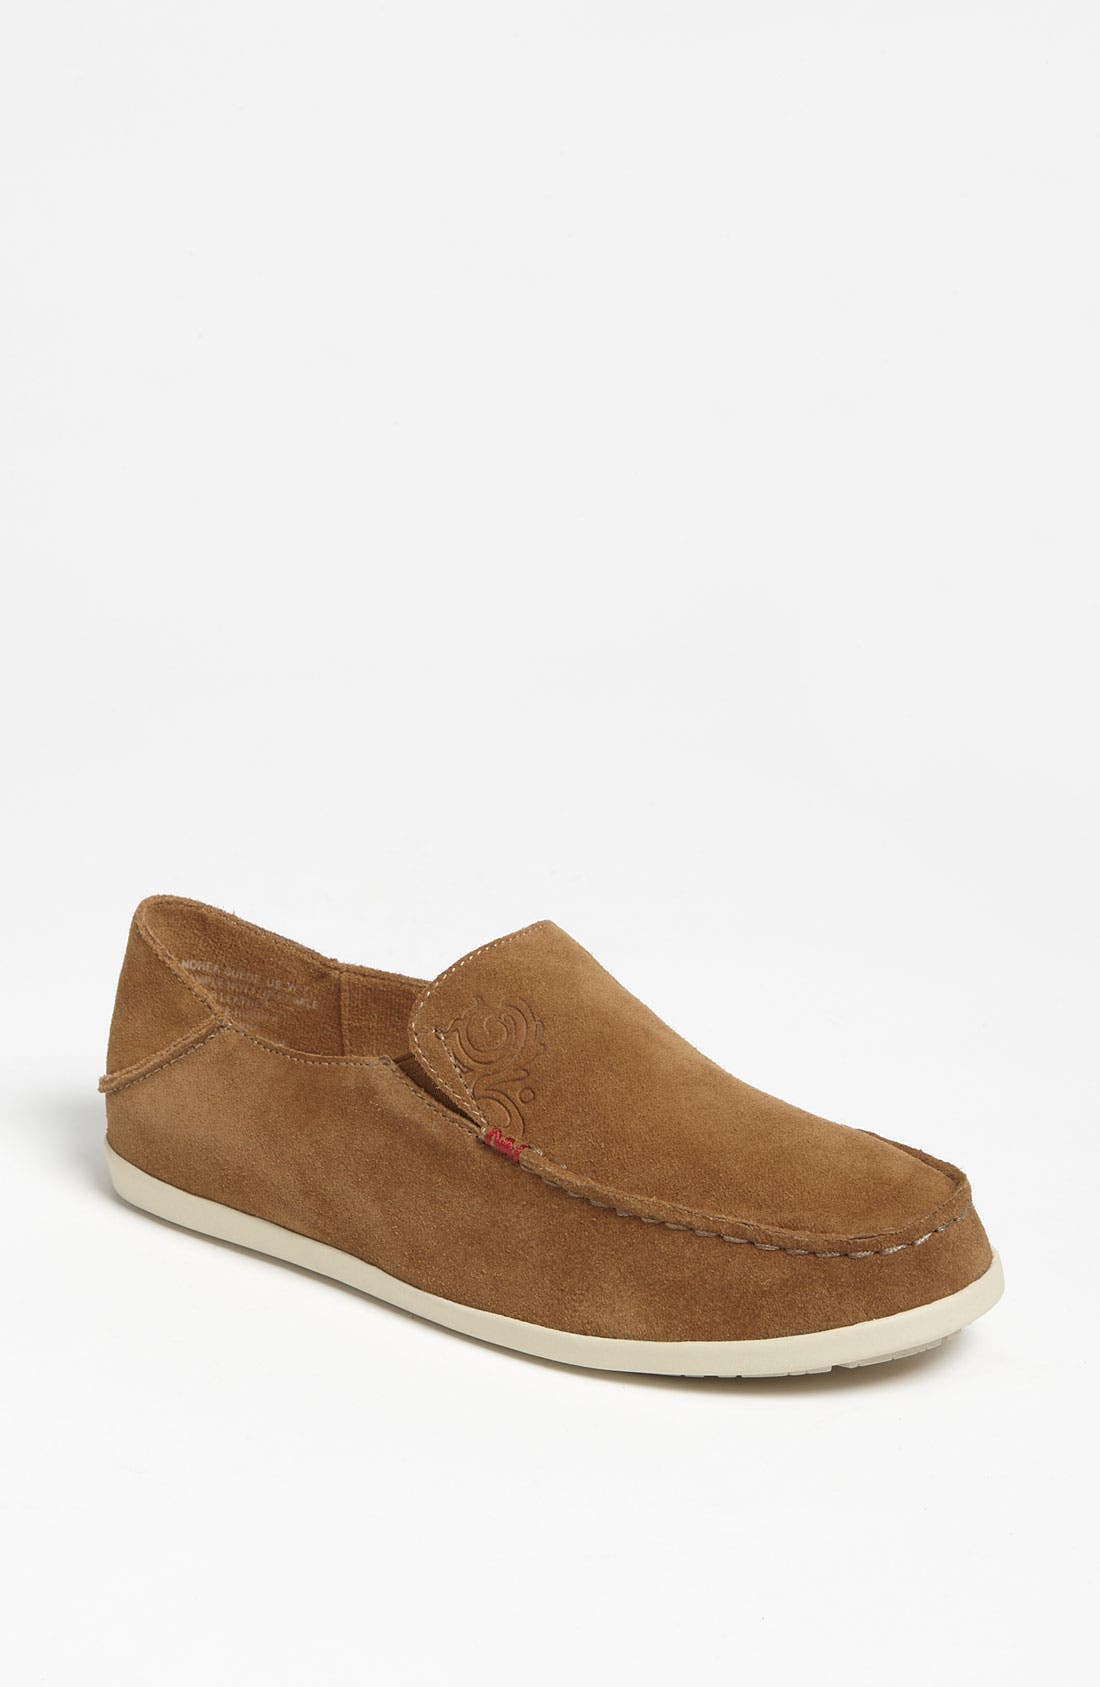 Main Image - OluKai 'Nohea' Suede Slip-On (Women)